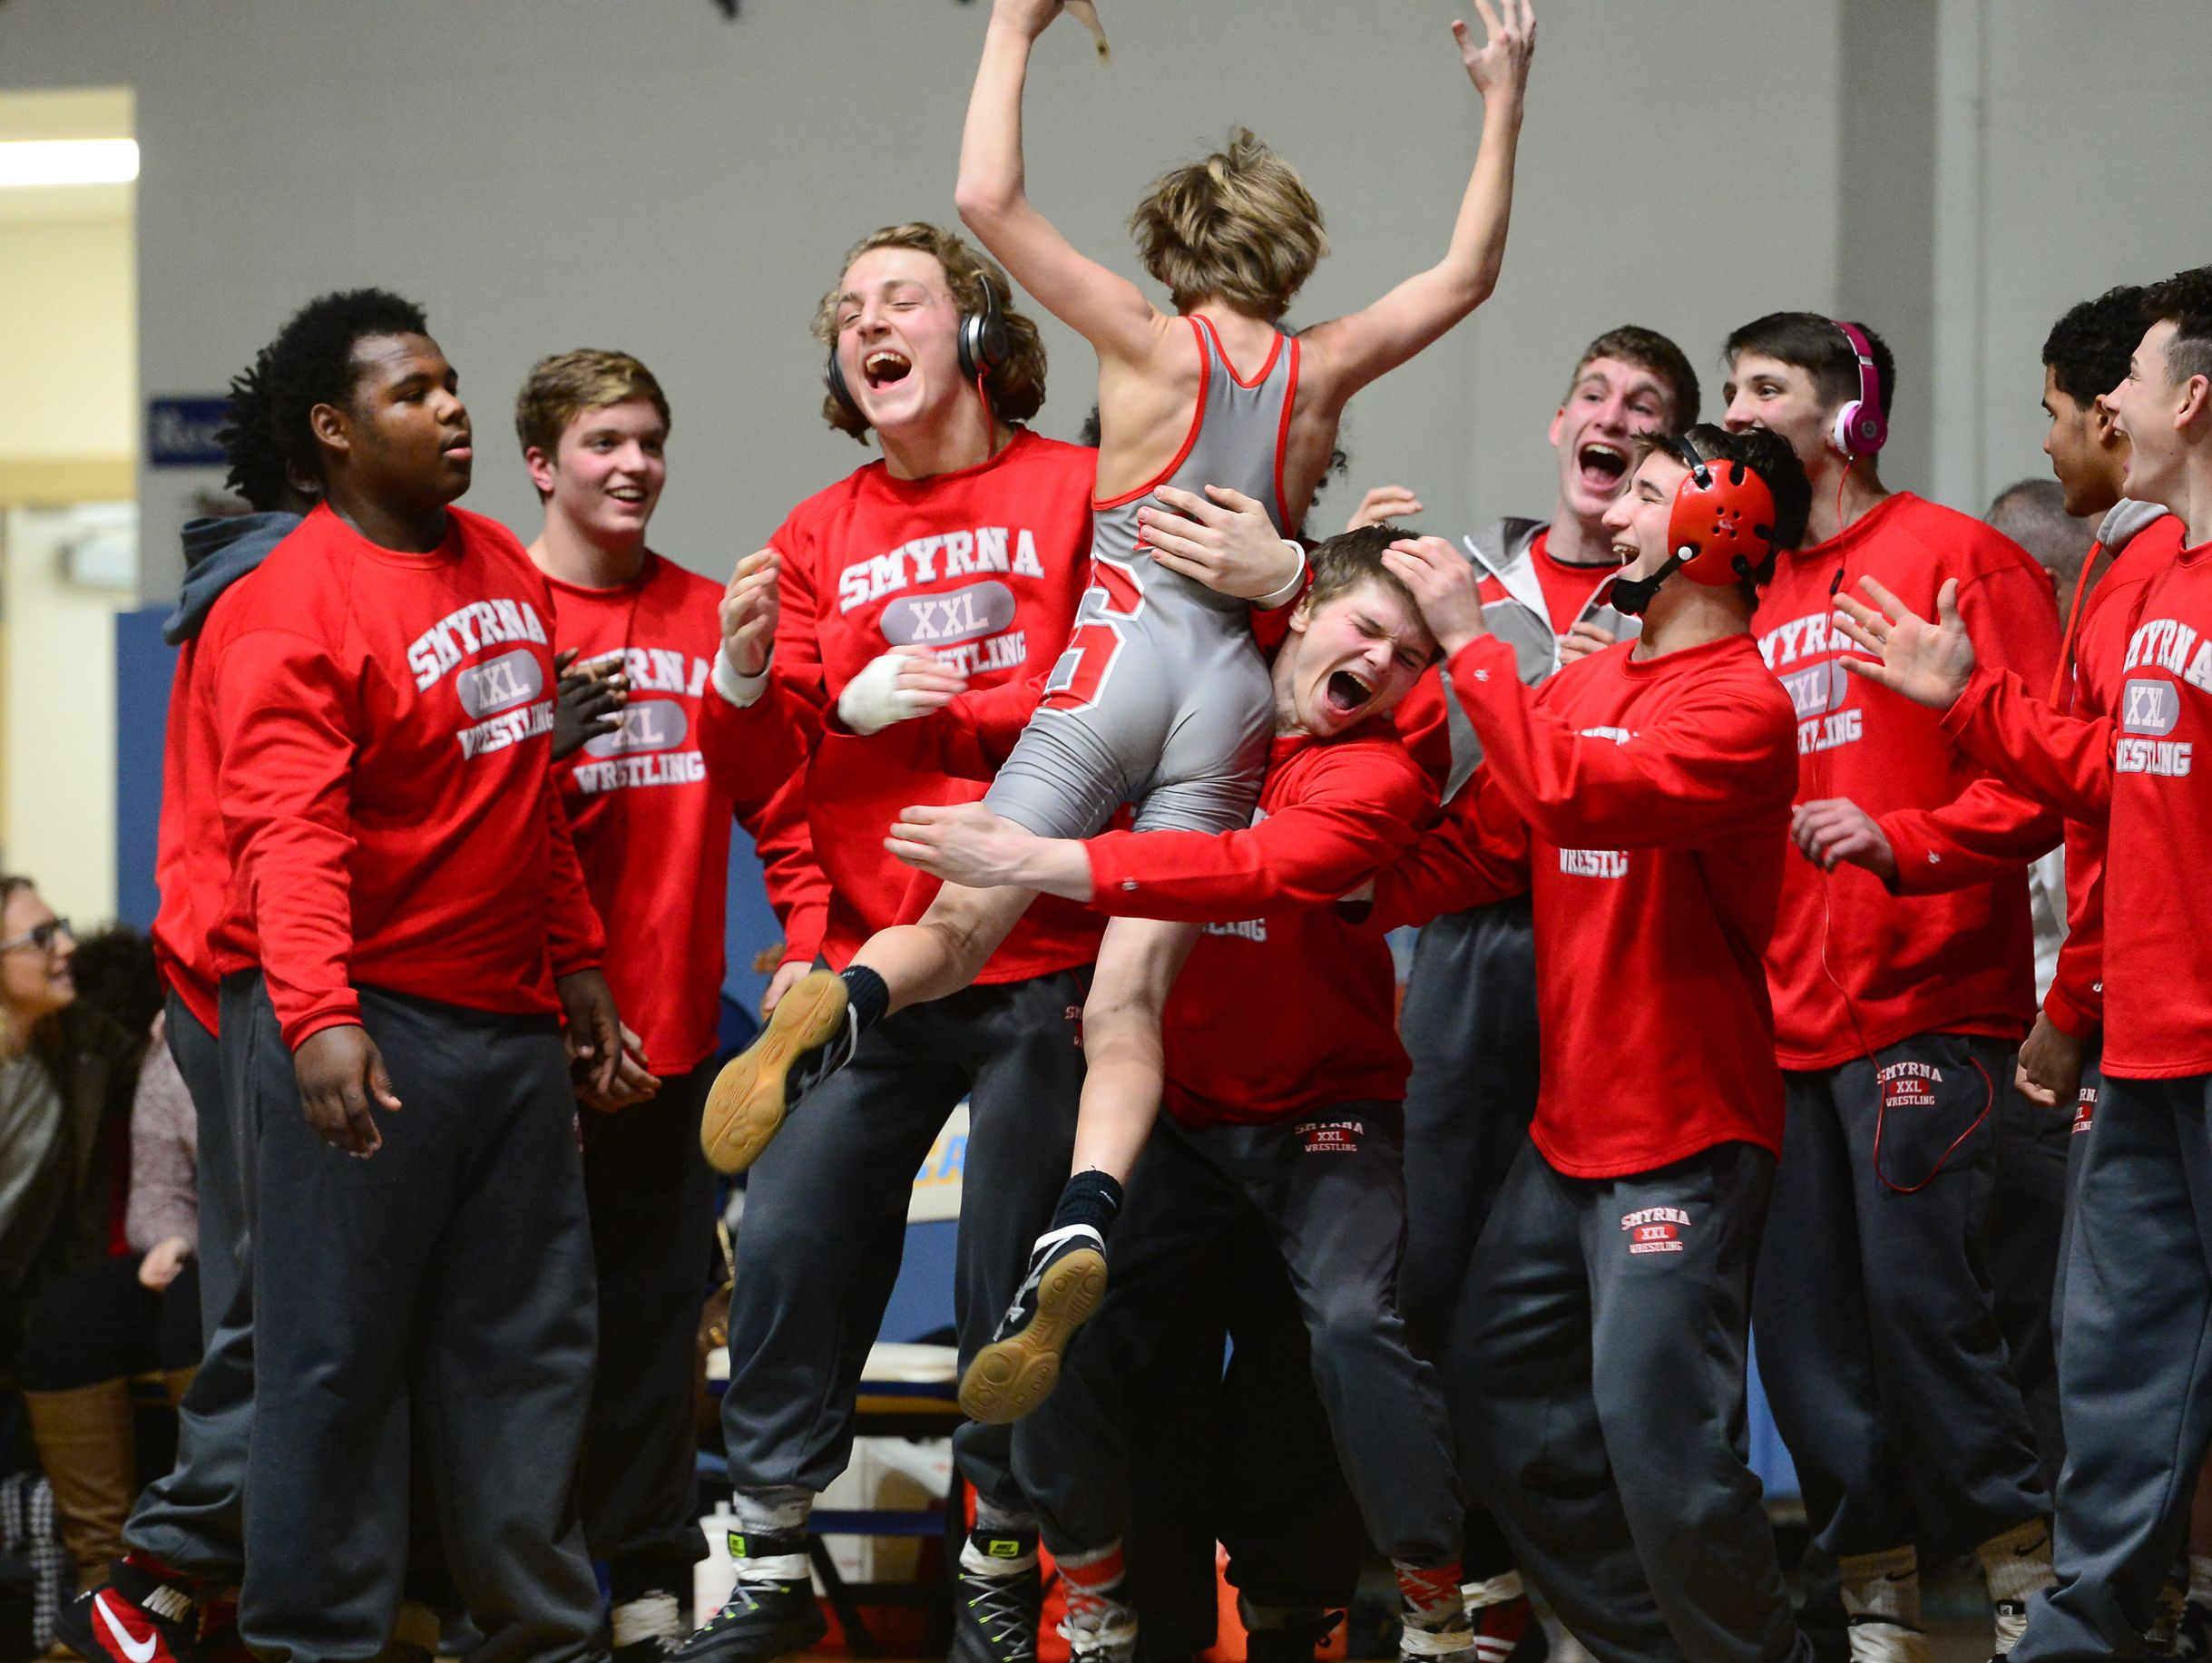 Smyrna's Dylan Andruzzi celebrates with his teammates after winning his first match of the year during the 106lb match up against Keith Harmon at Cape Henlopen High School on Wednesday, Jan. 18, 2017.